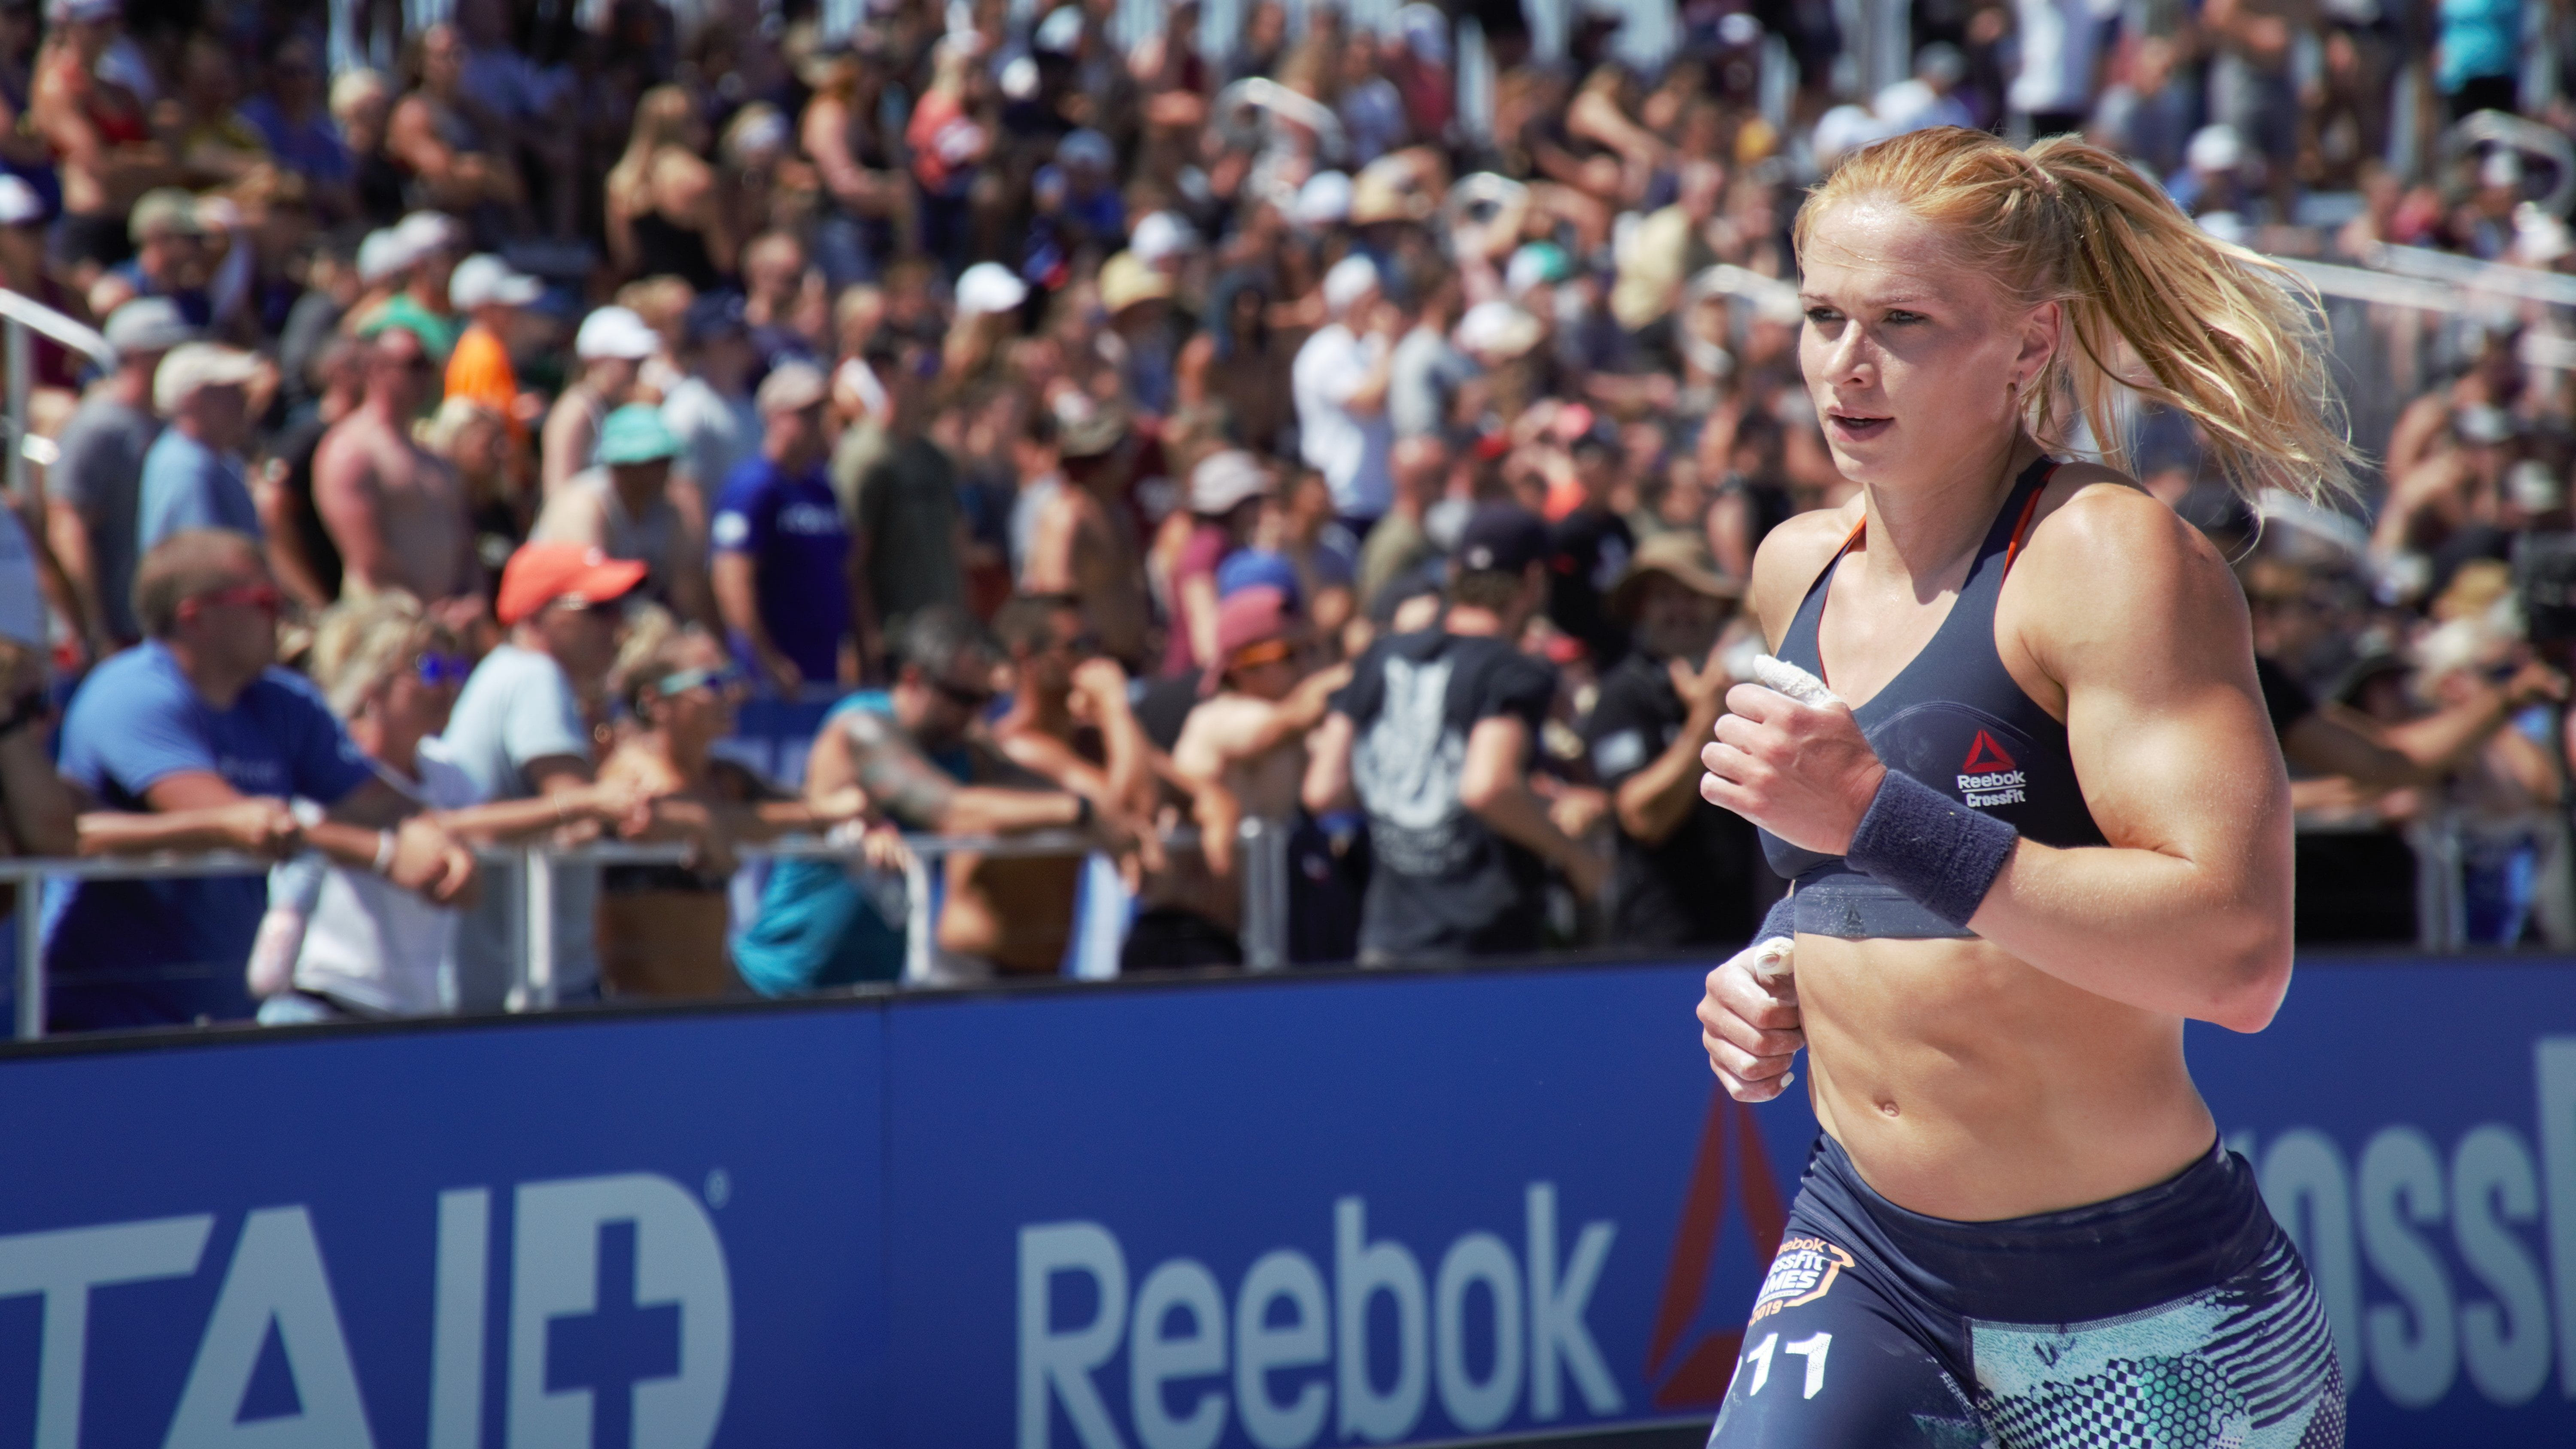 Next CrossFit Games Event Released, Men and Women to Use Same Weights